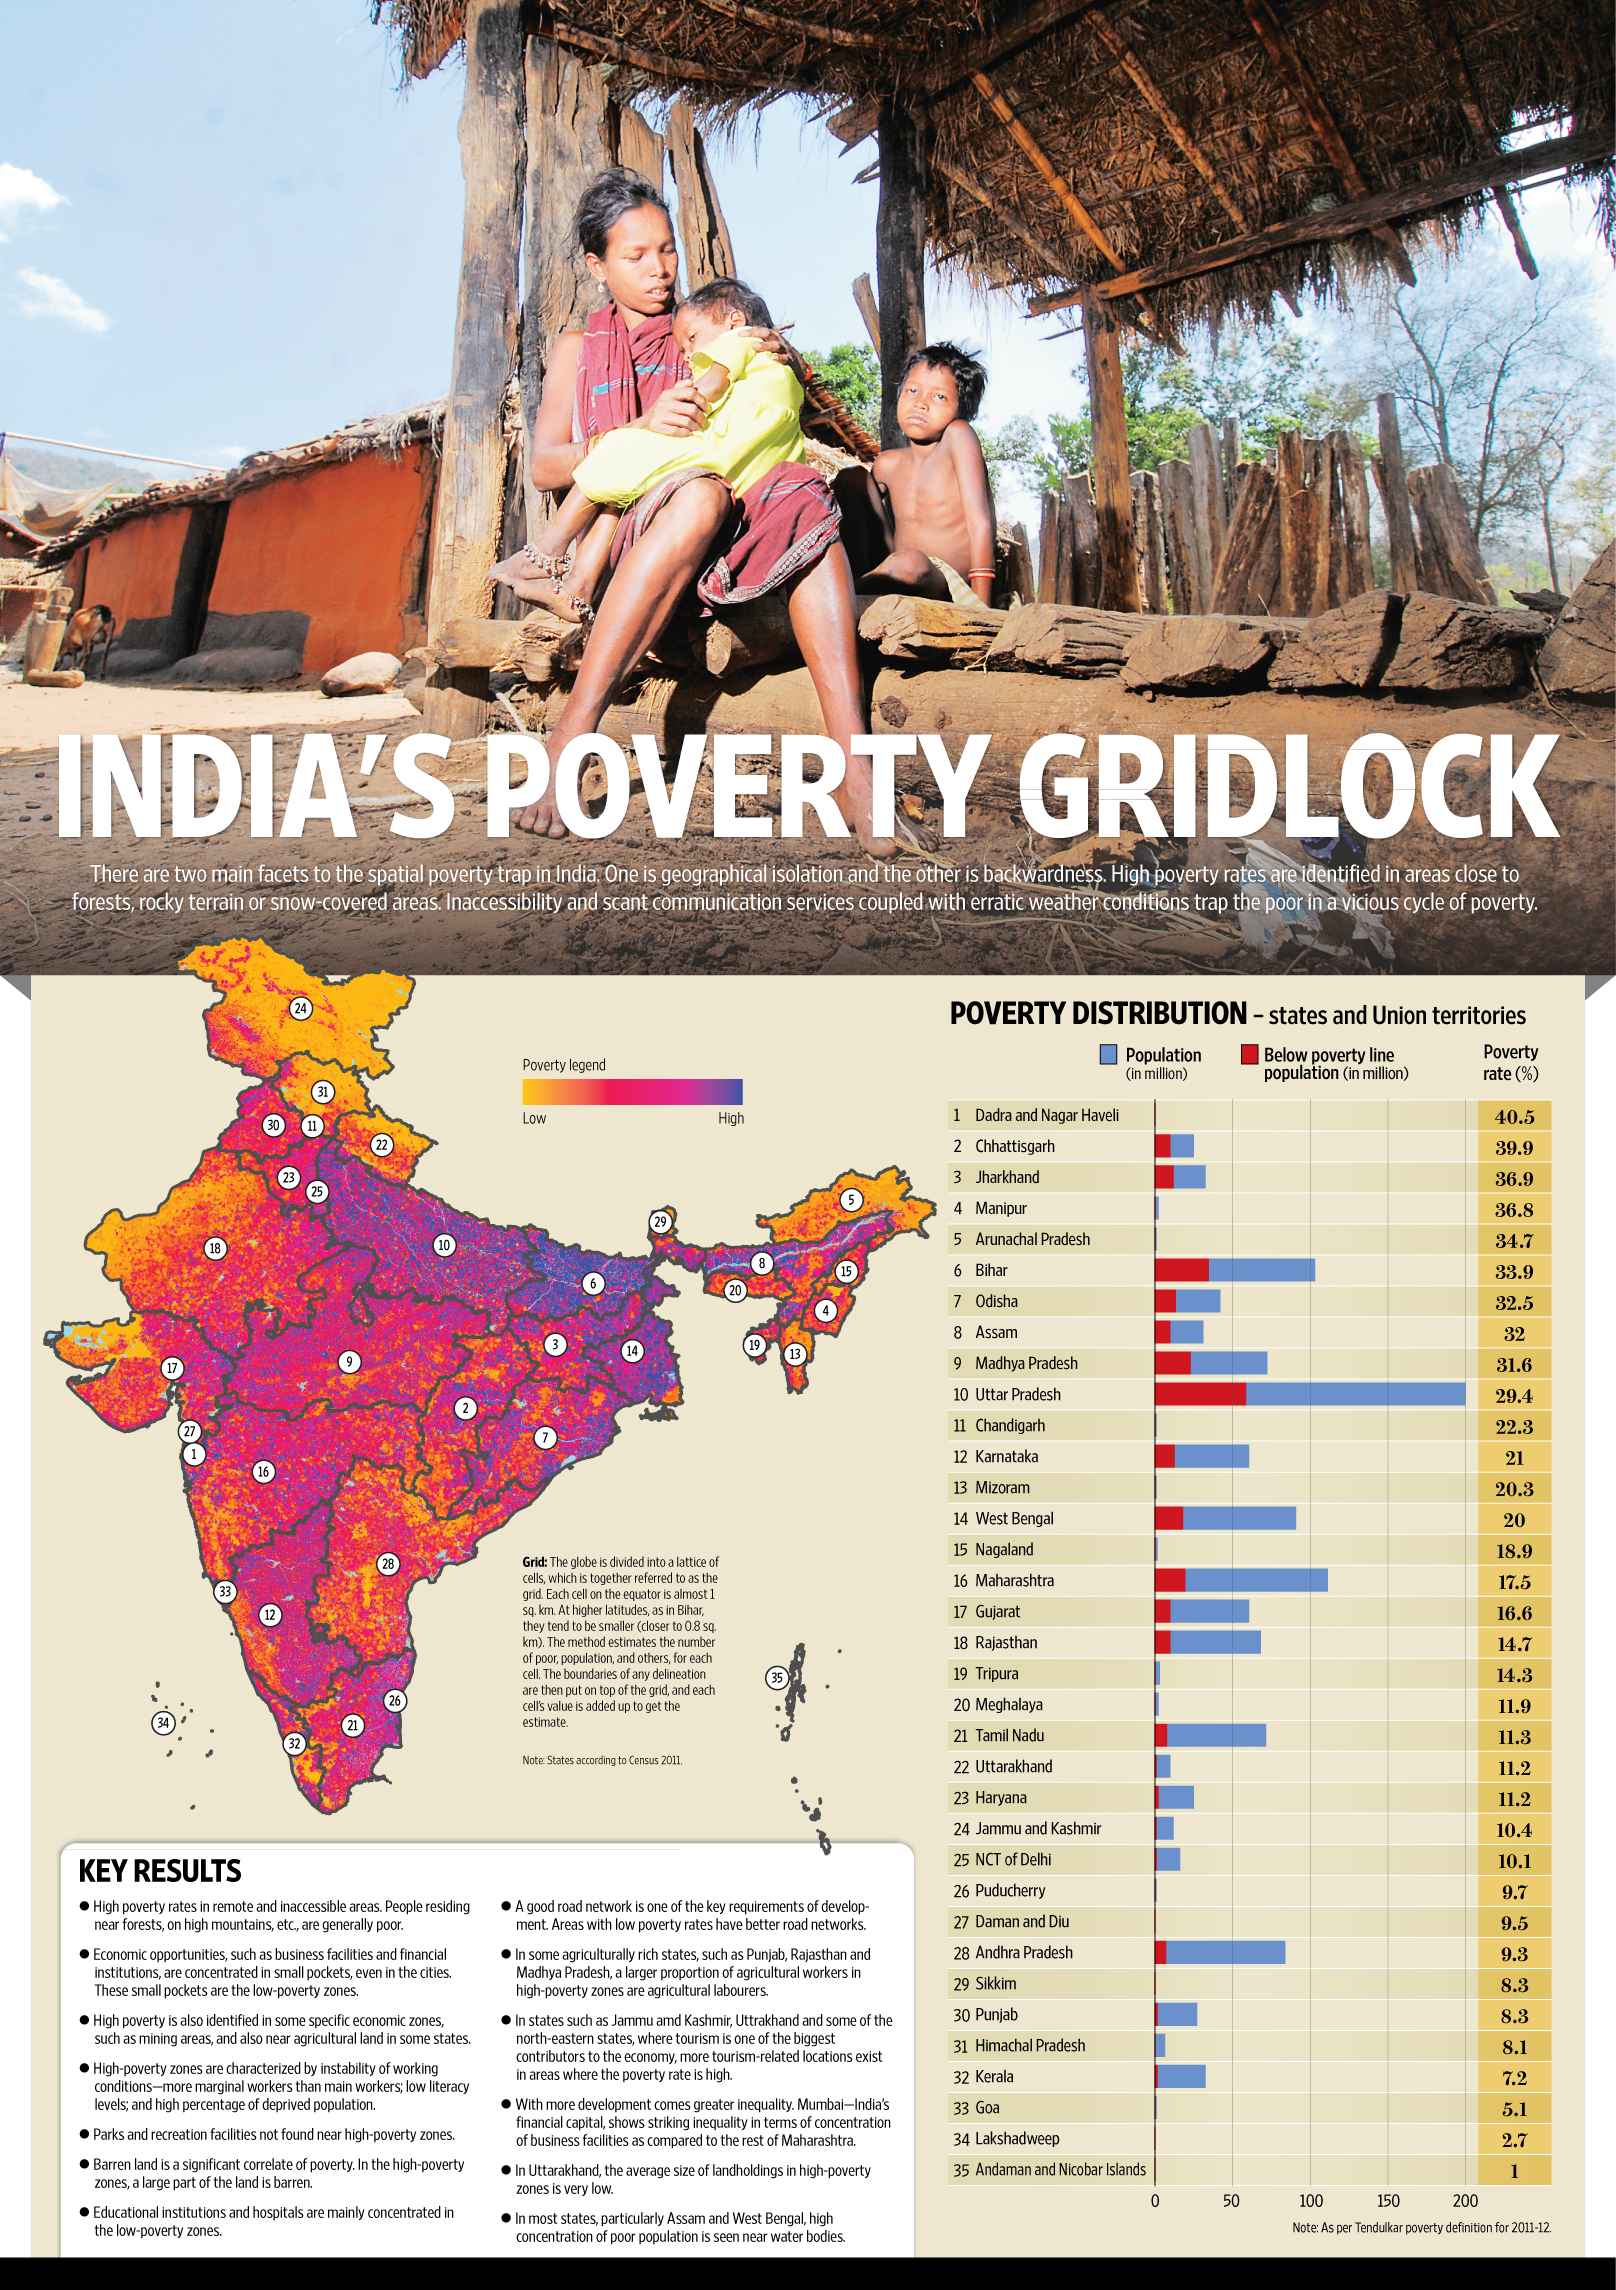 essay on poverty alleviation programmes in india Types and measures to reduce poverty in india essay essay on poverty in india: meaning, types, measures programmes launched for poverty alleviation.